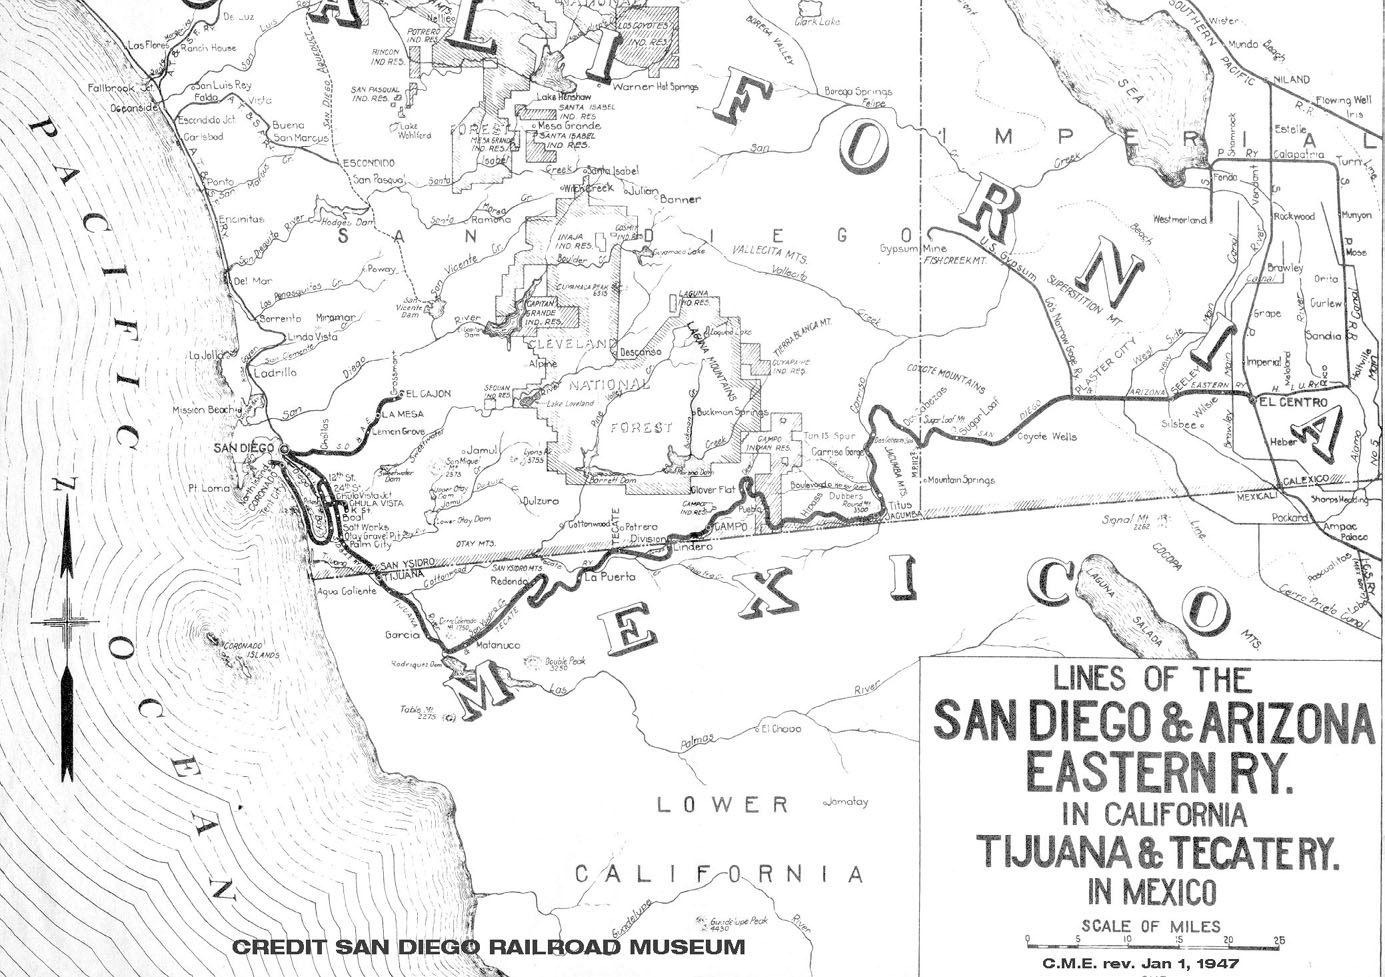 Sango And Arizona Railway Drawings